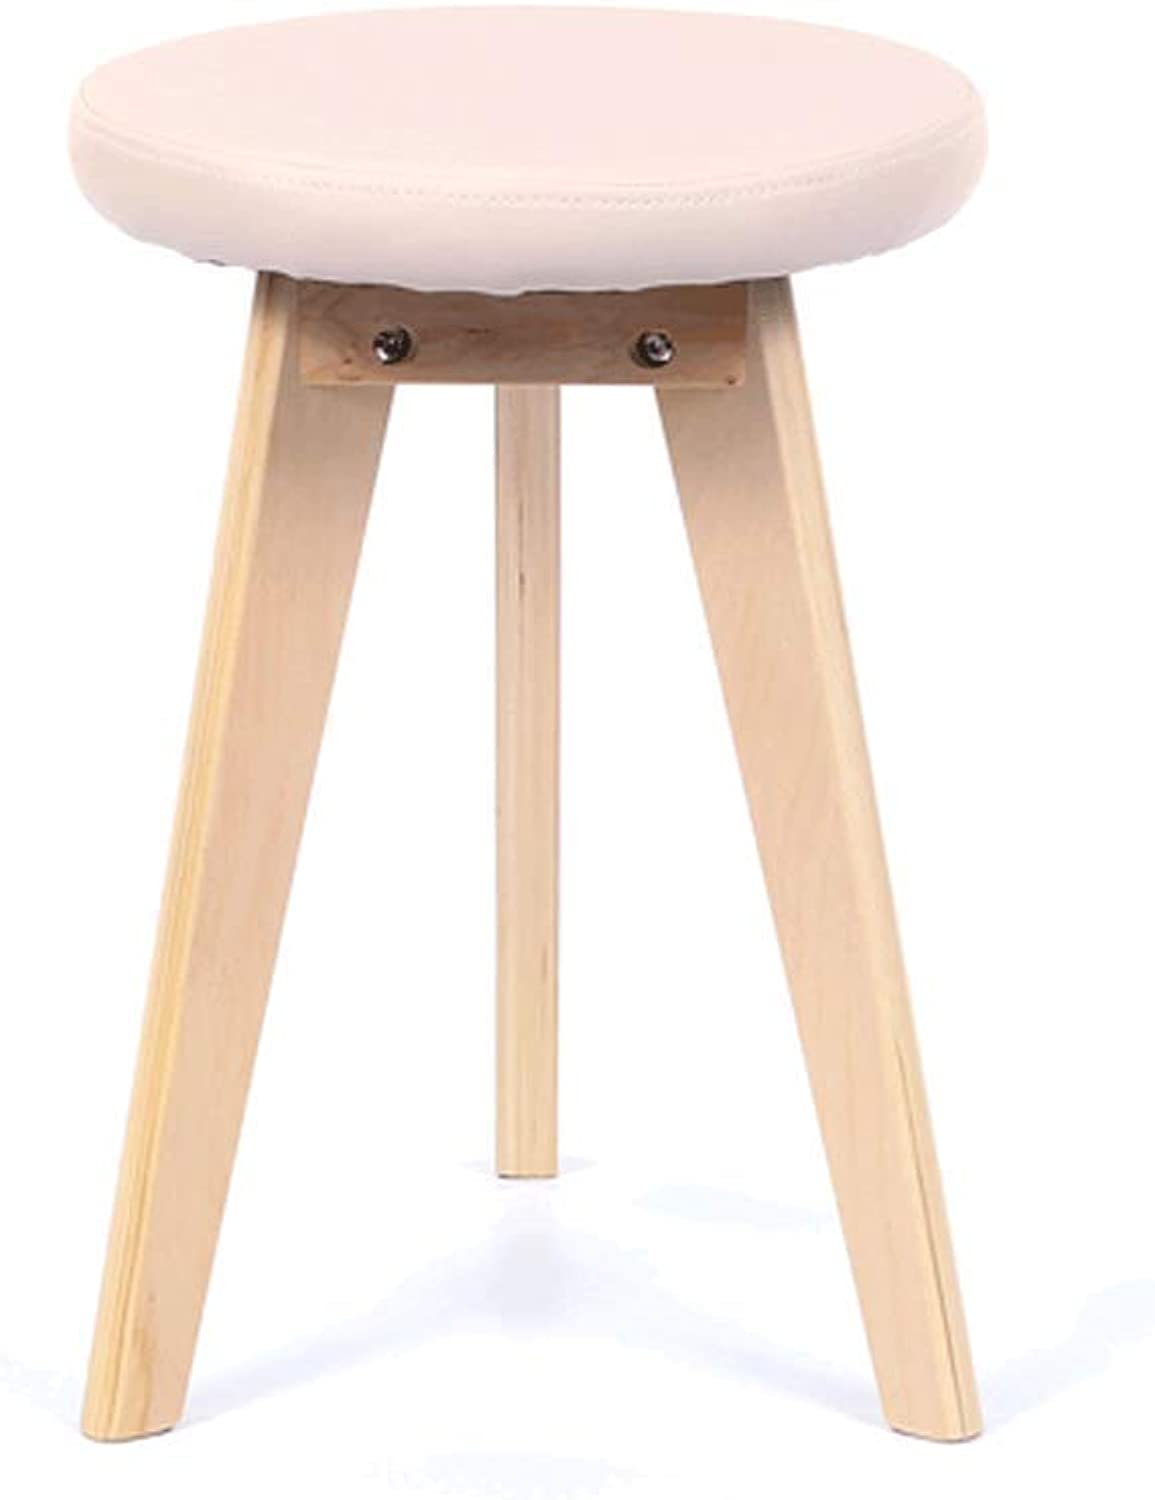 Aijl Footstool, Small Bench Living Room Dining Stool Sofa Stool Bed End Stool 36  32  48cm (7 colors) (color   Beige PU)